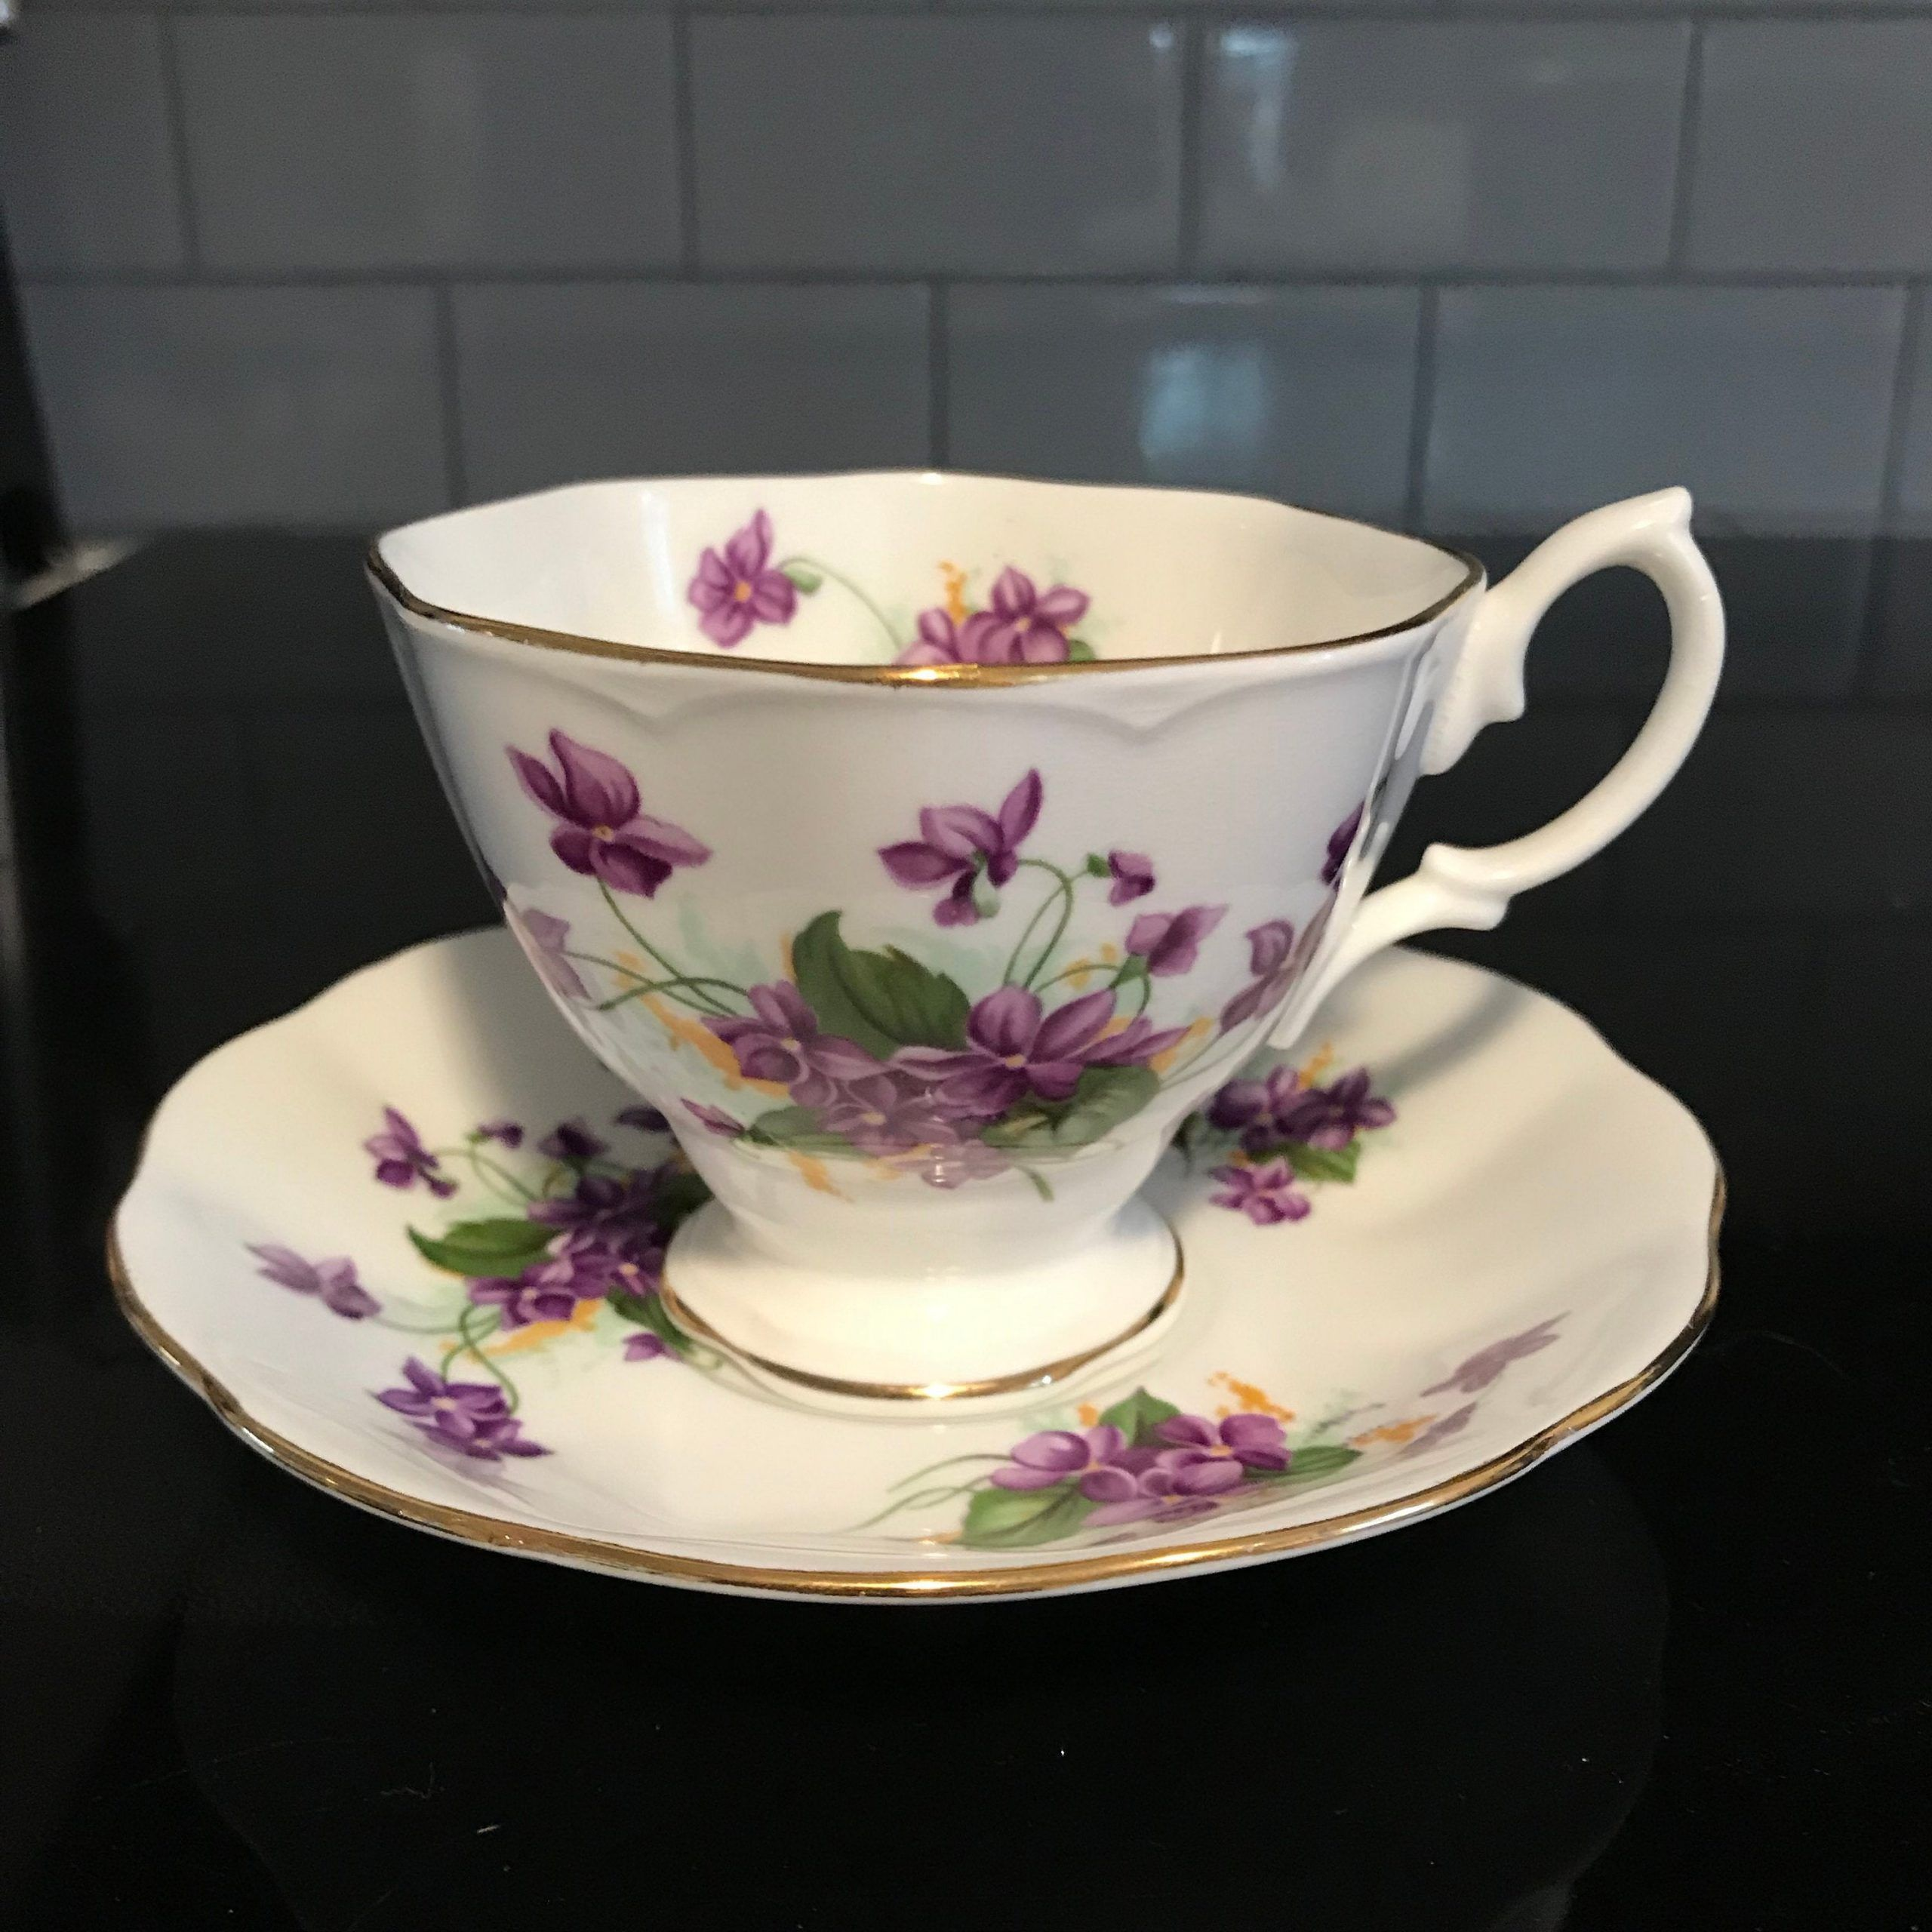 Royal Albert tea cup and saucer England Fine bone china purple Violets yellow centers flower farmhouse collectible display coffee | Carol's True Vintage and Antiques #cuppatea